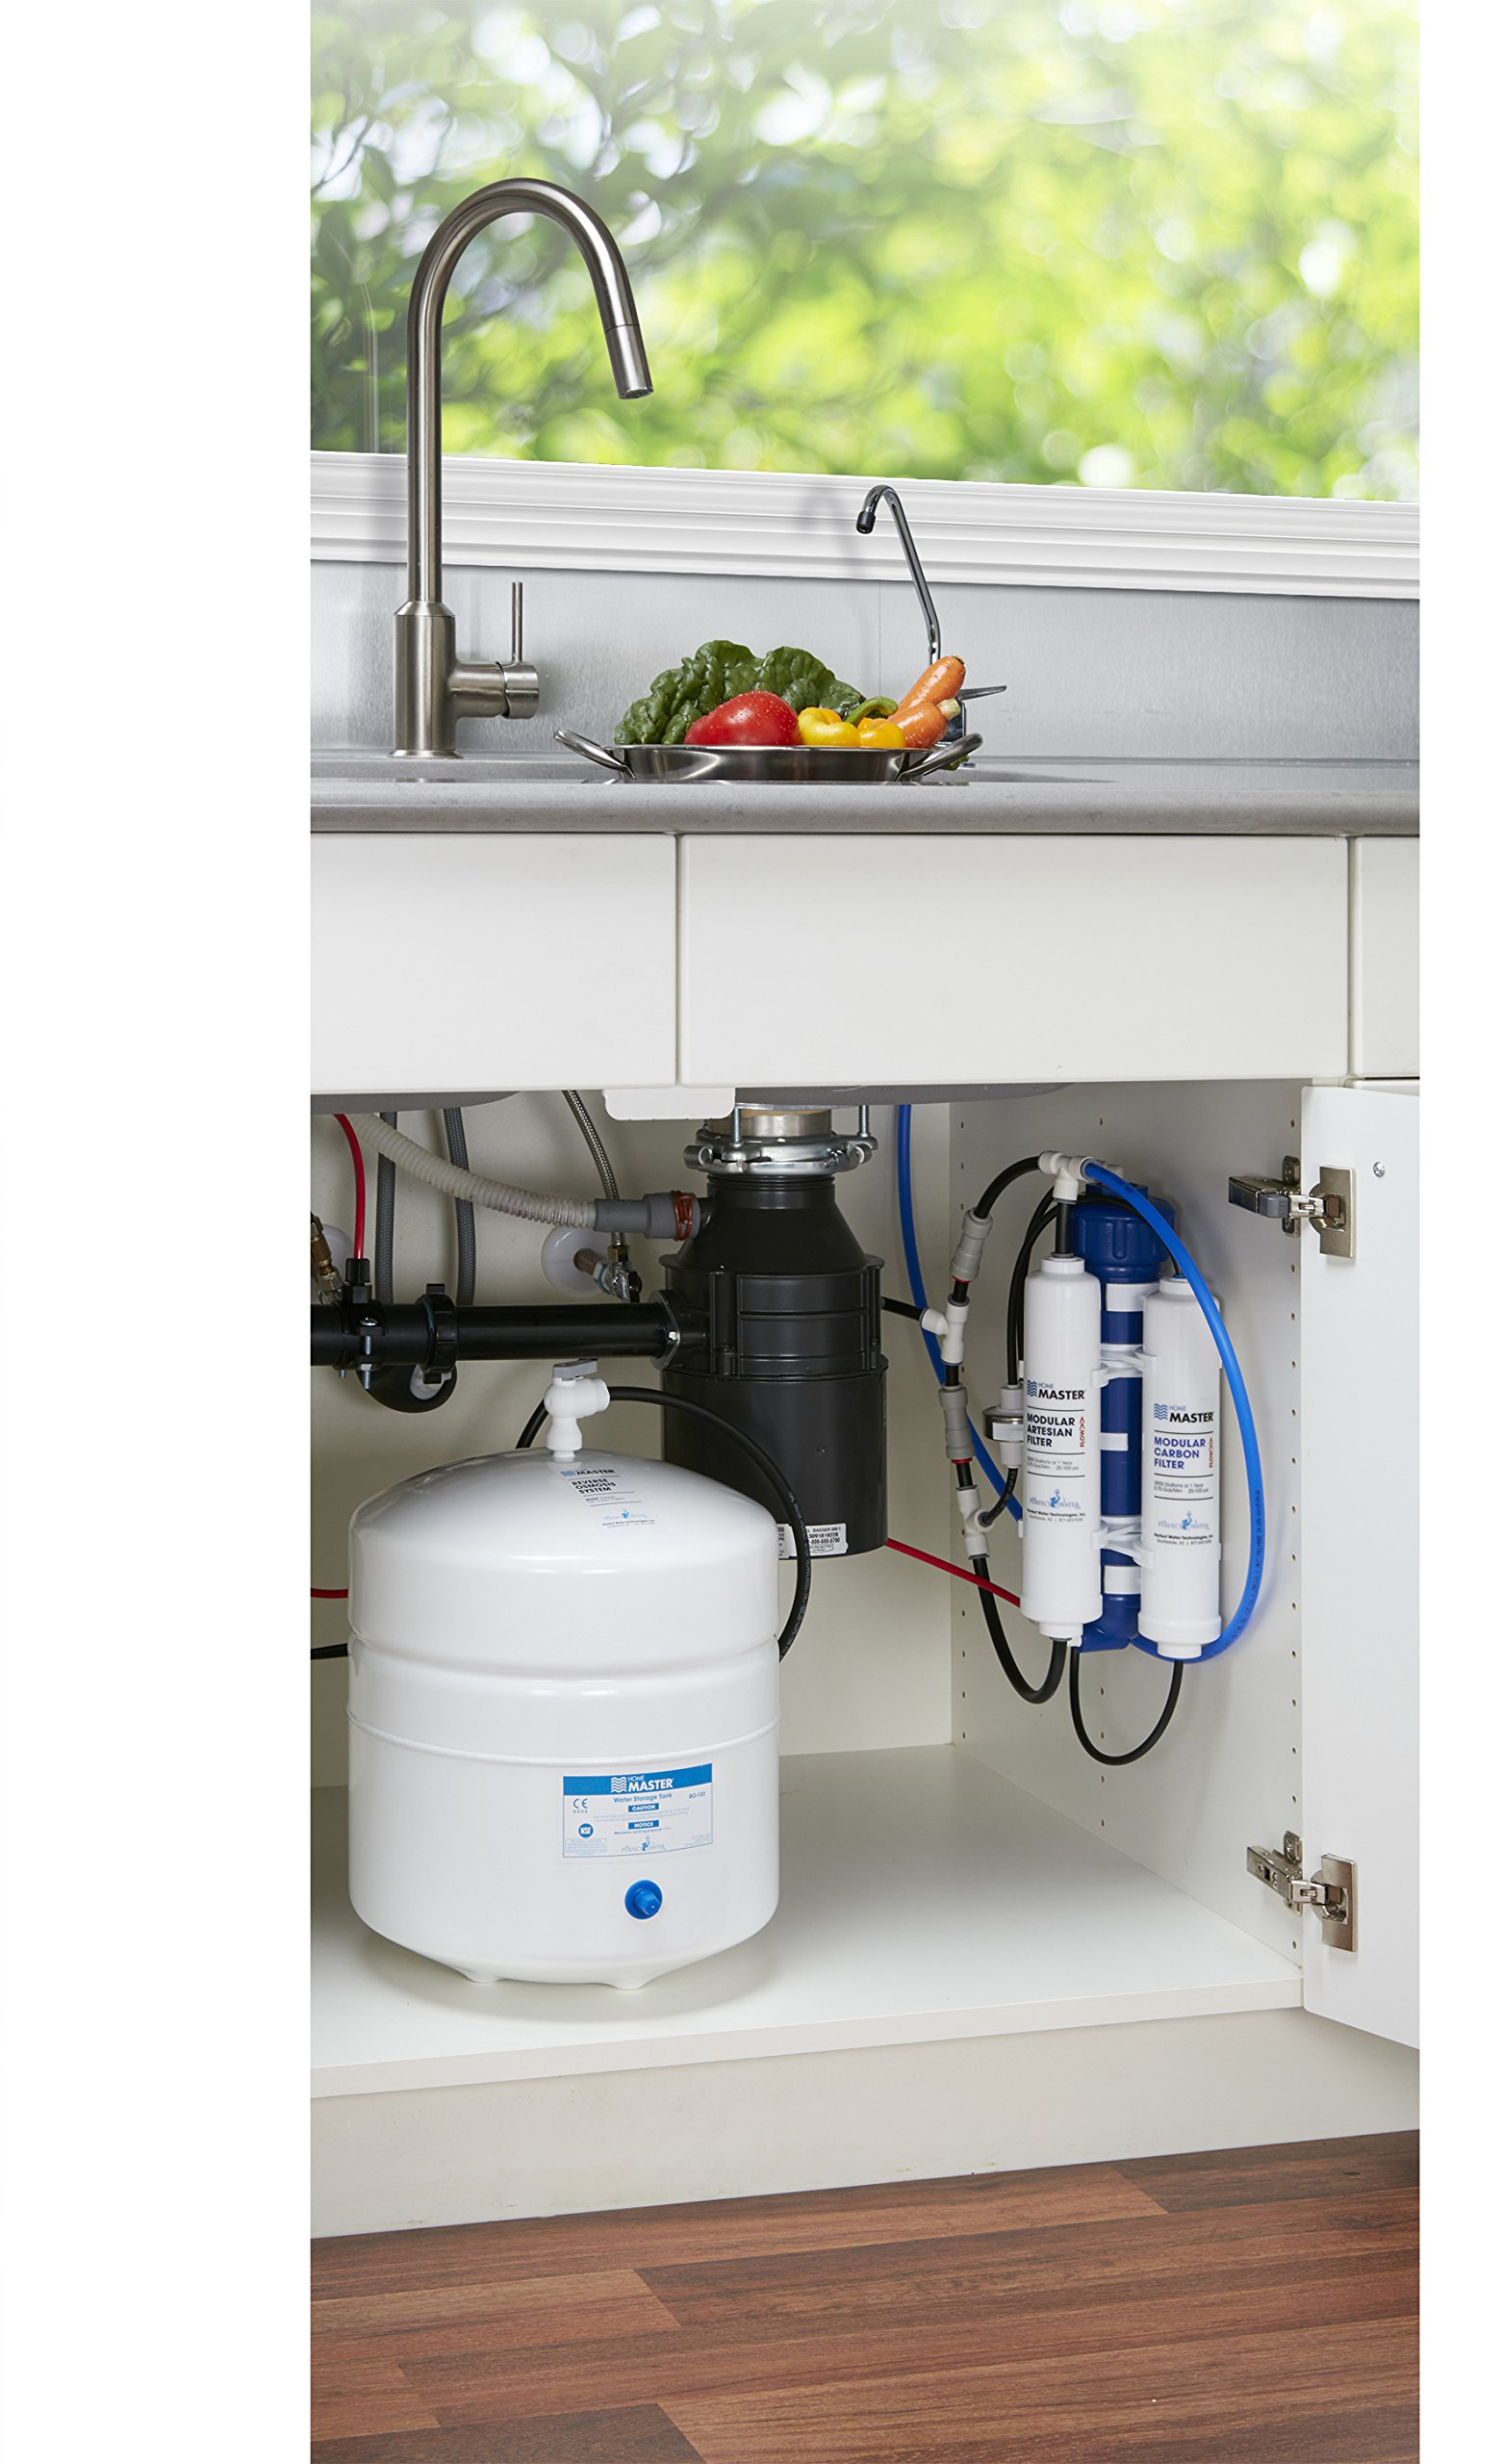 Home Master TMHP HydroPerfection Undersink Reverse Osmosis Water Filter System by Home Master (Image #2)